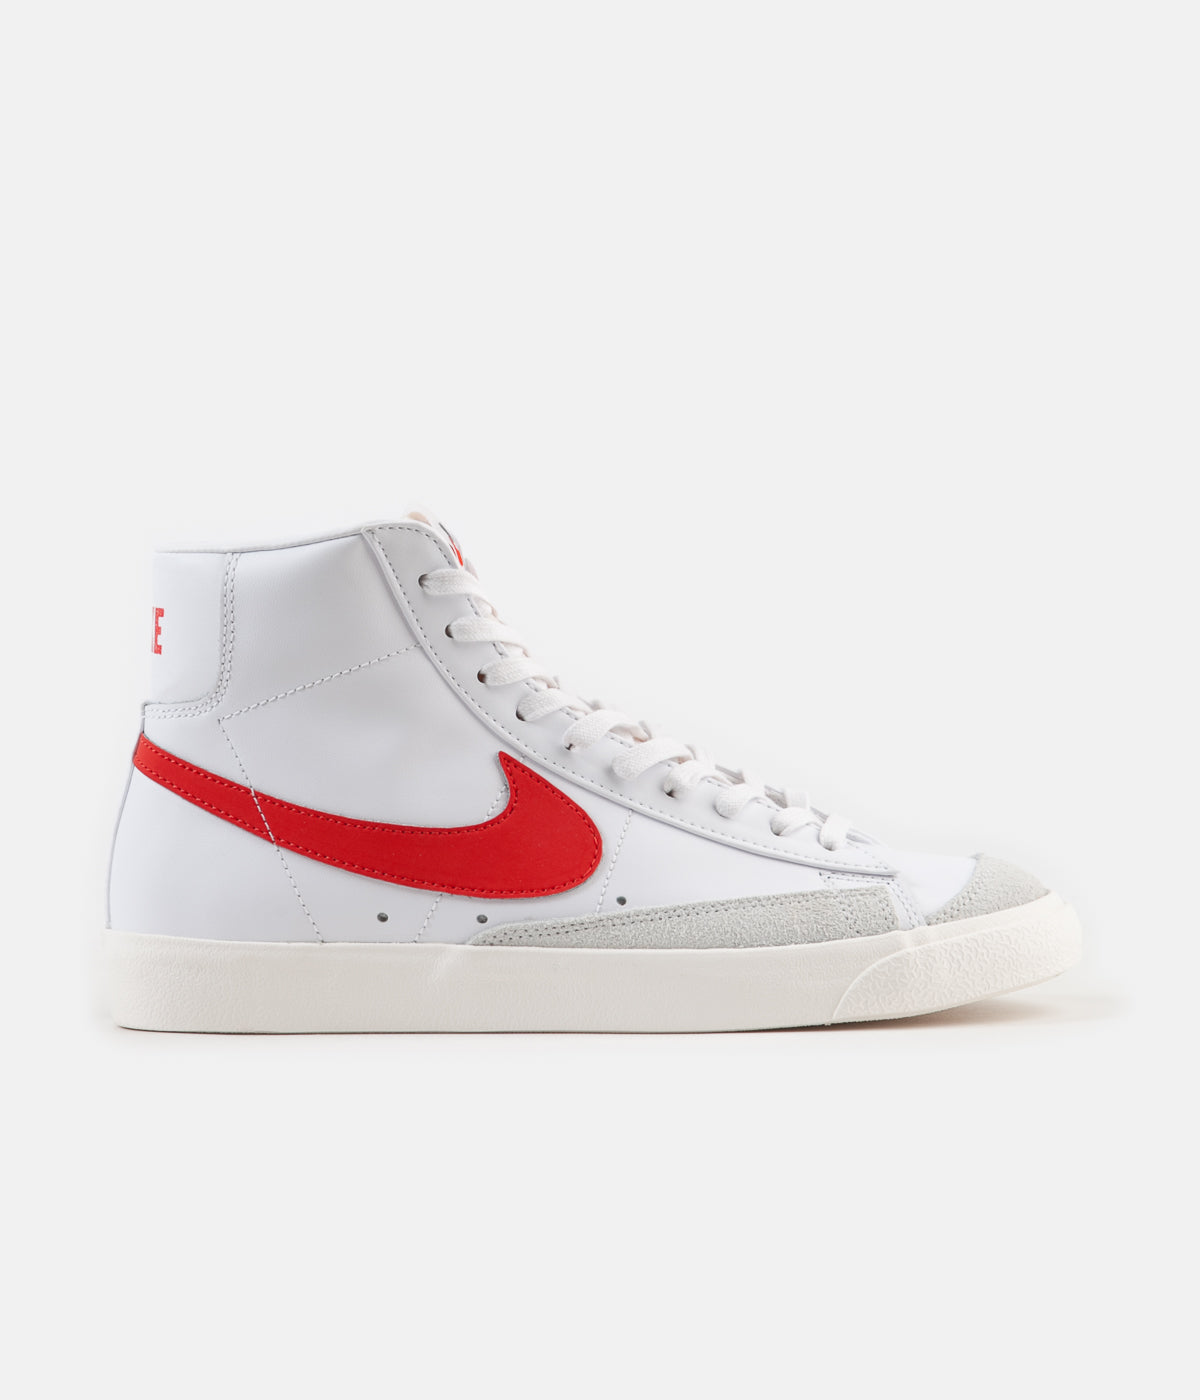 official photos c7022 f0f02 ... Nike Blazer Mid  77 Vintage Shoes - Habanero Red   Sail - White ...